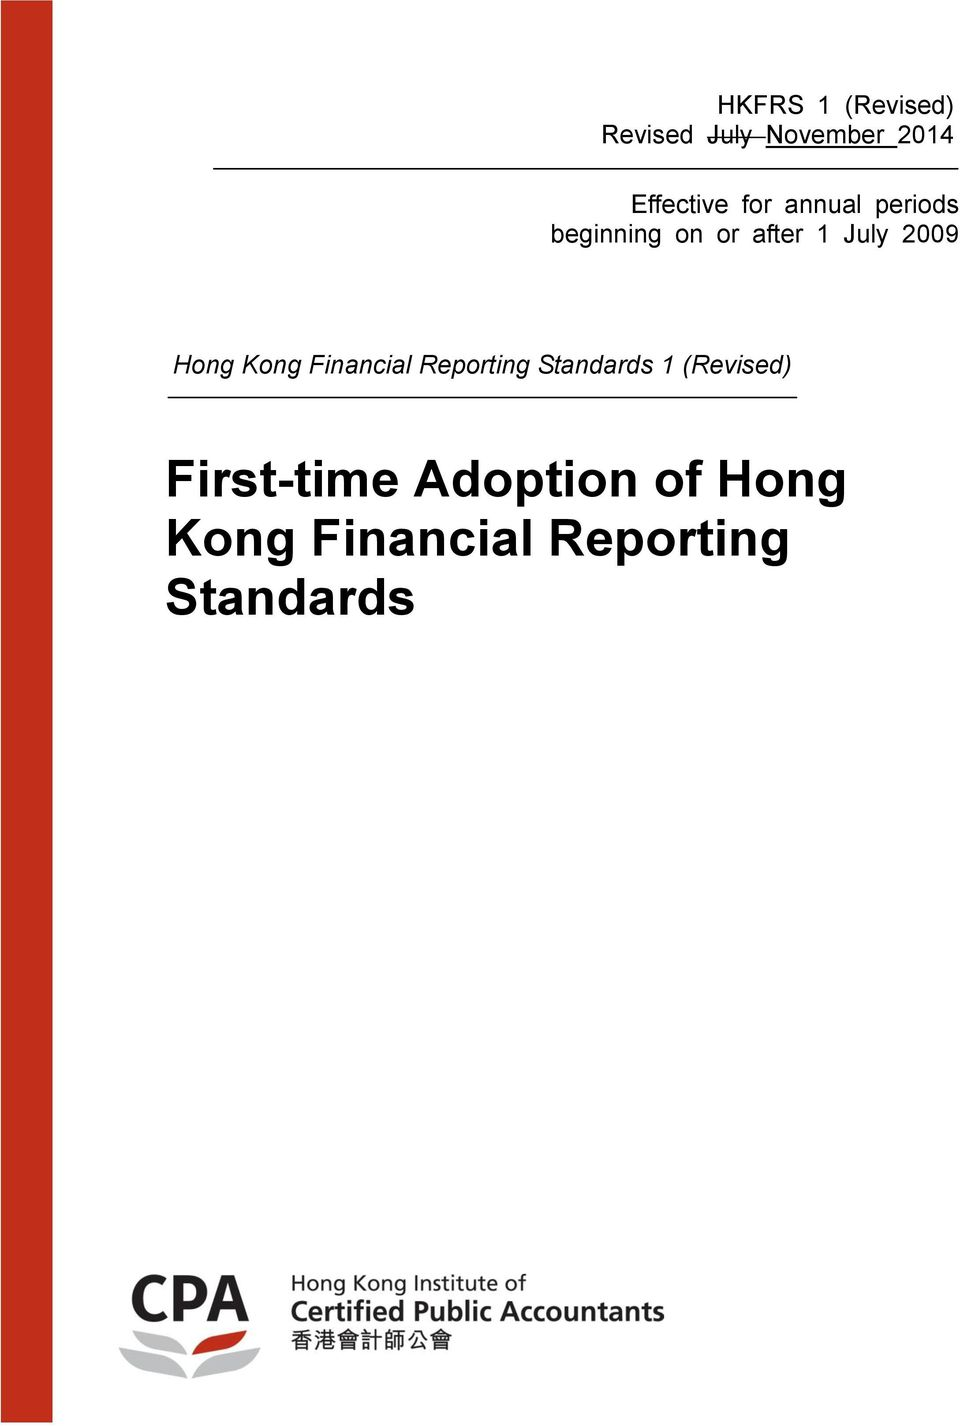 Hong Kong Financial Reporting Standards 1 (Revised)